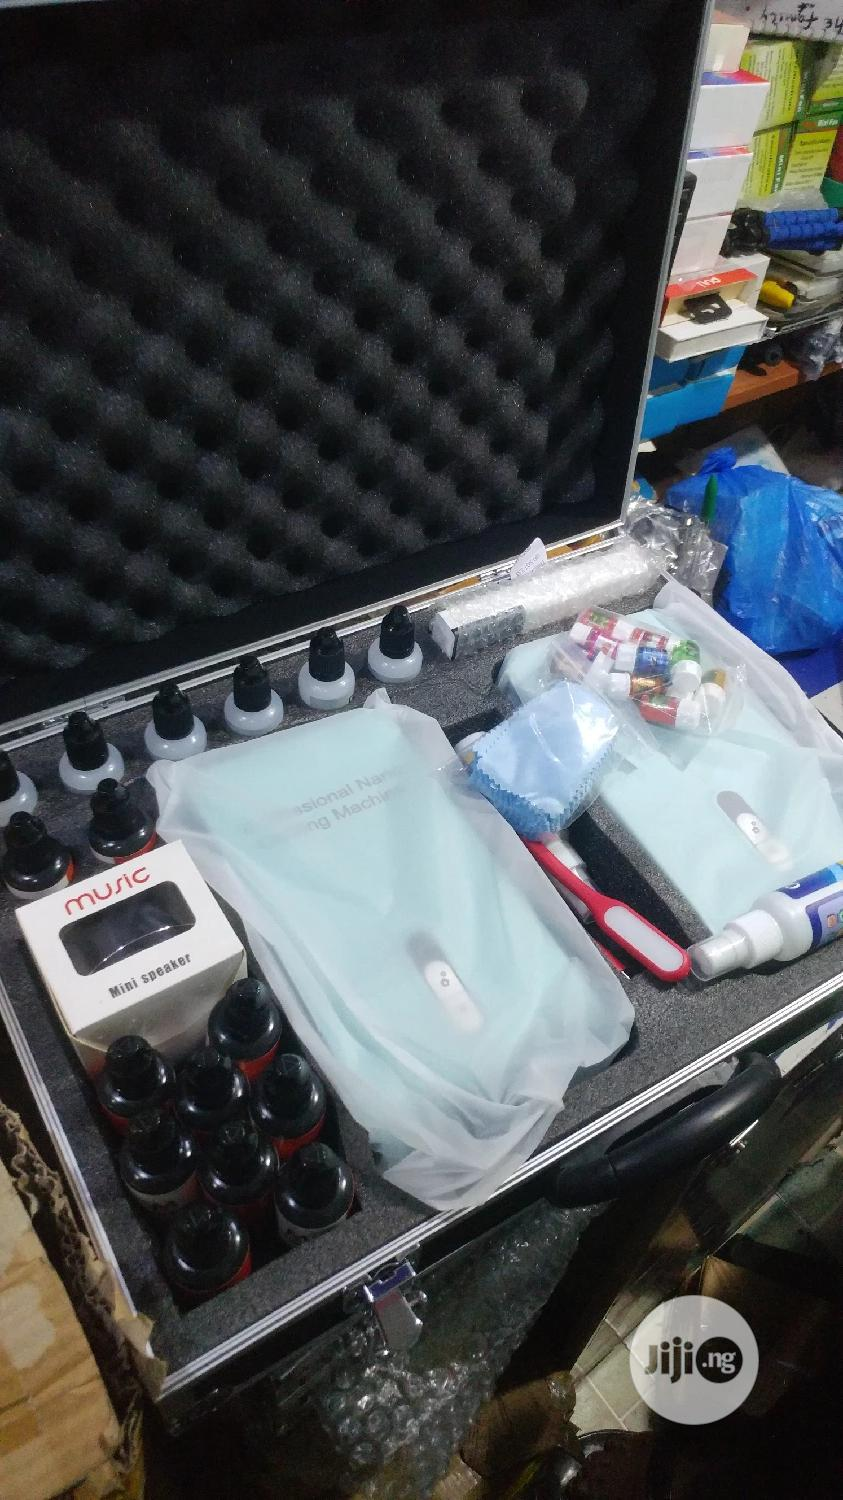 Uv Sterilizer Phone Screen Protector Nano Coating Machine | Accessories for Mobile Phones & Tablets for sale in Ikeja, Lagos State, Nigeria